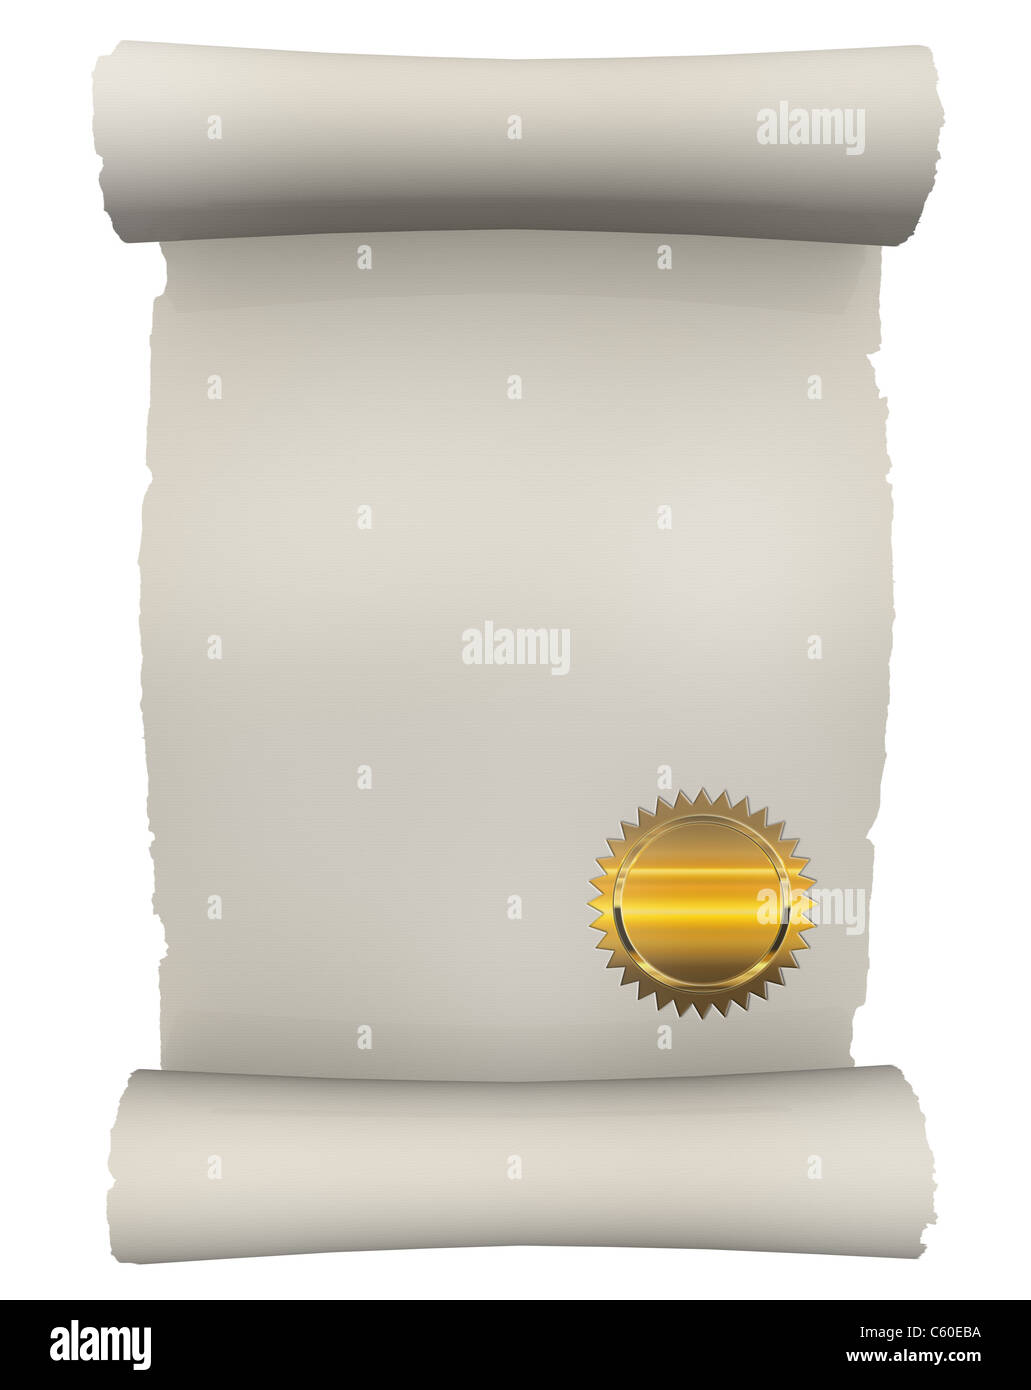 Certificate Scroll with golden seal - Stock Image